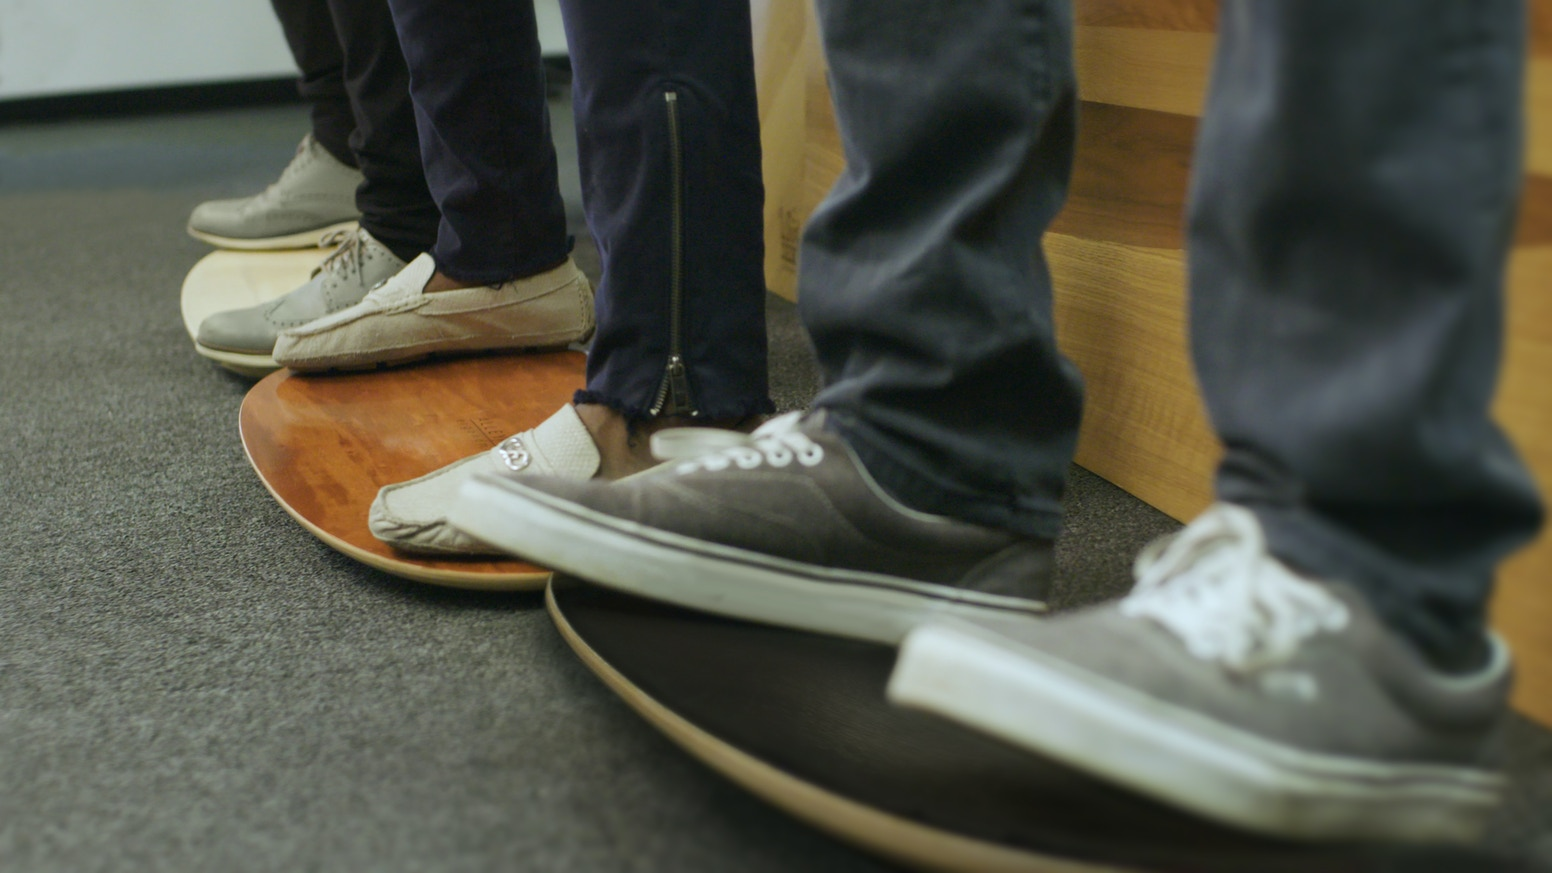 Stand comfortably and confidently at work with the AlleyOOP Rocker Board—the first omni-directional rocking board that moves you more.